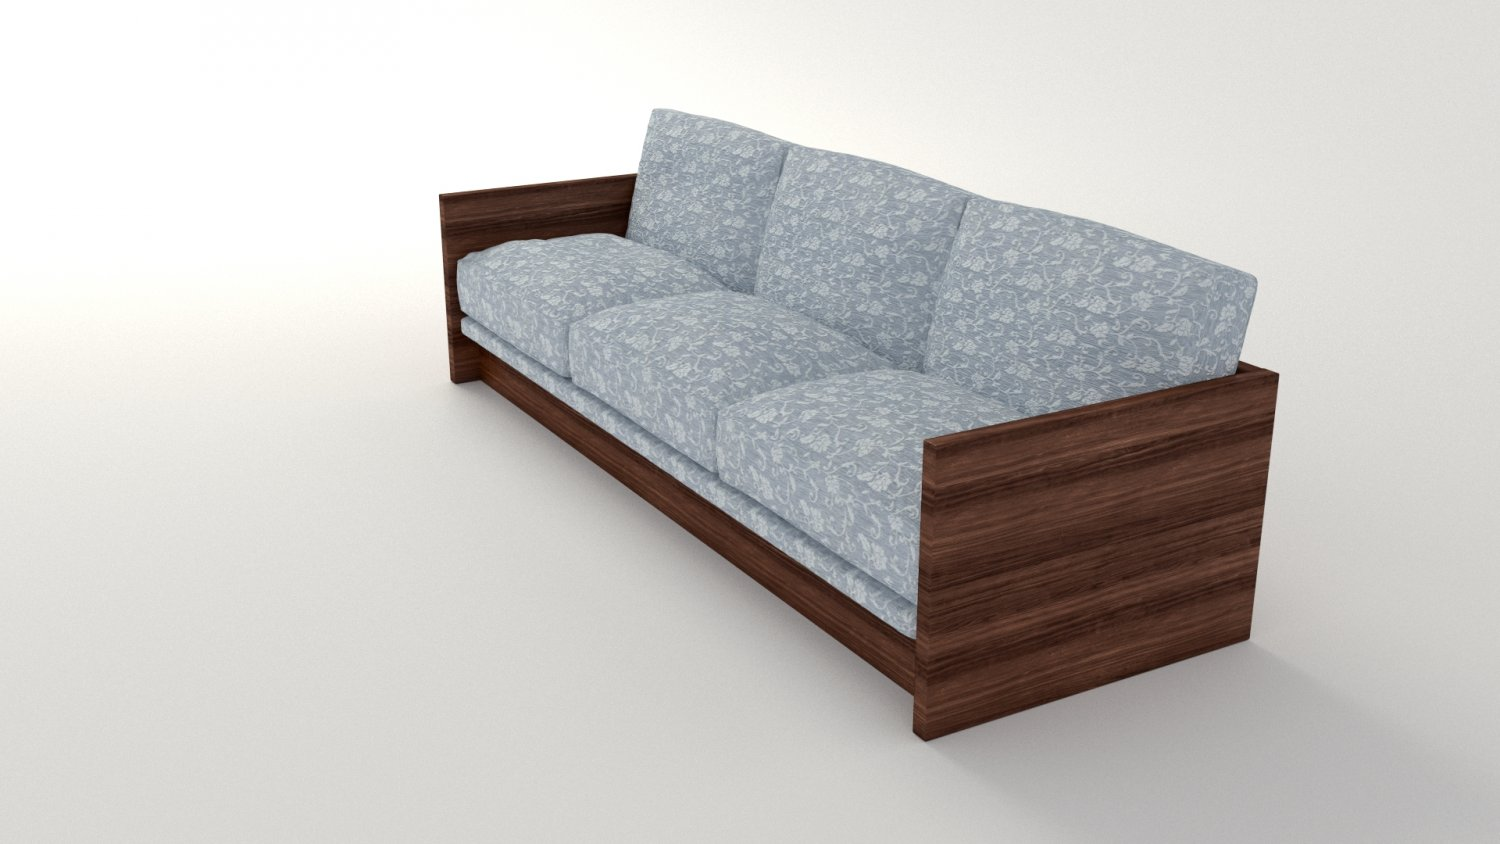 Retro Sofa Wood Retro Sofa 3d Model In Sofa 3dexport